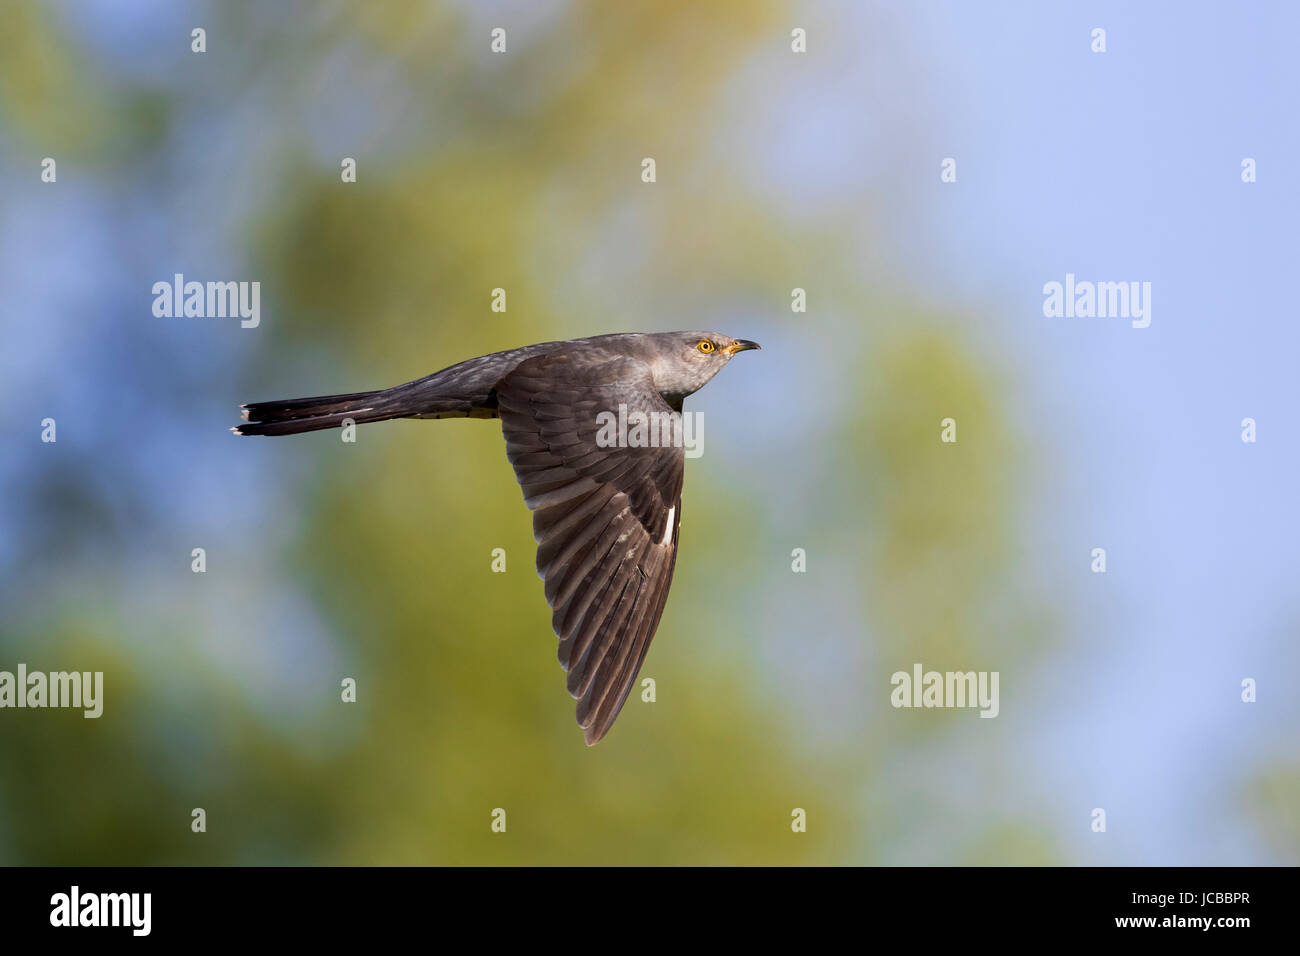 Common cuckoo (Cuculus canorus) male in flight - Stock Image